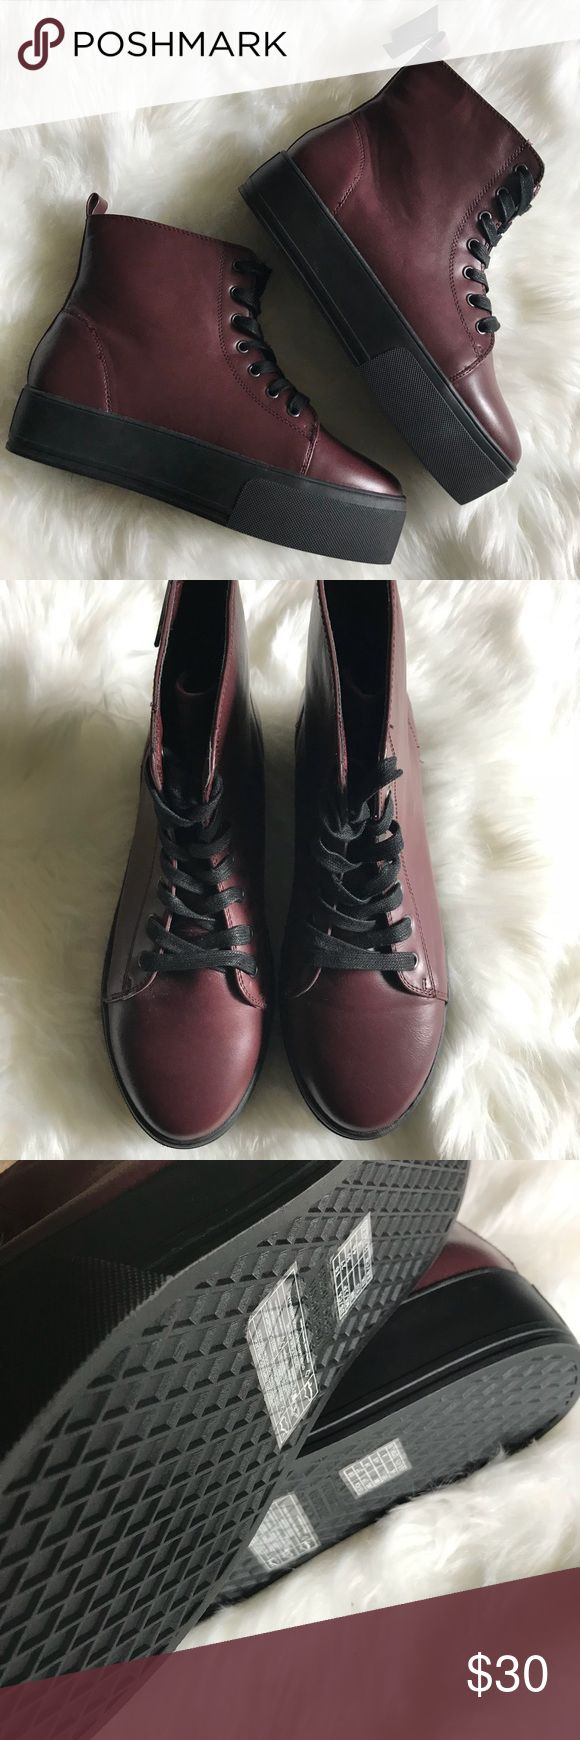 Platform snaeakers Add a little edge to your outfit with these burgundy platform sneakers. Forever 21 Shoes Sneakers